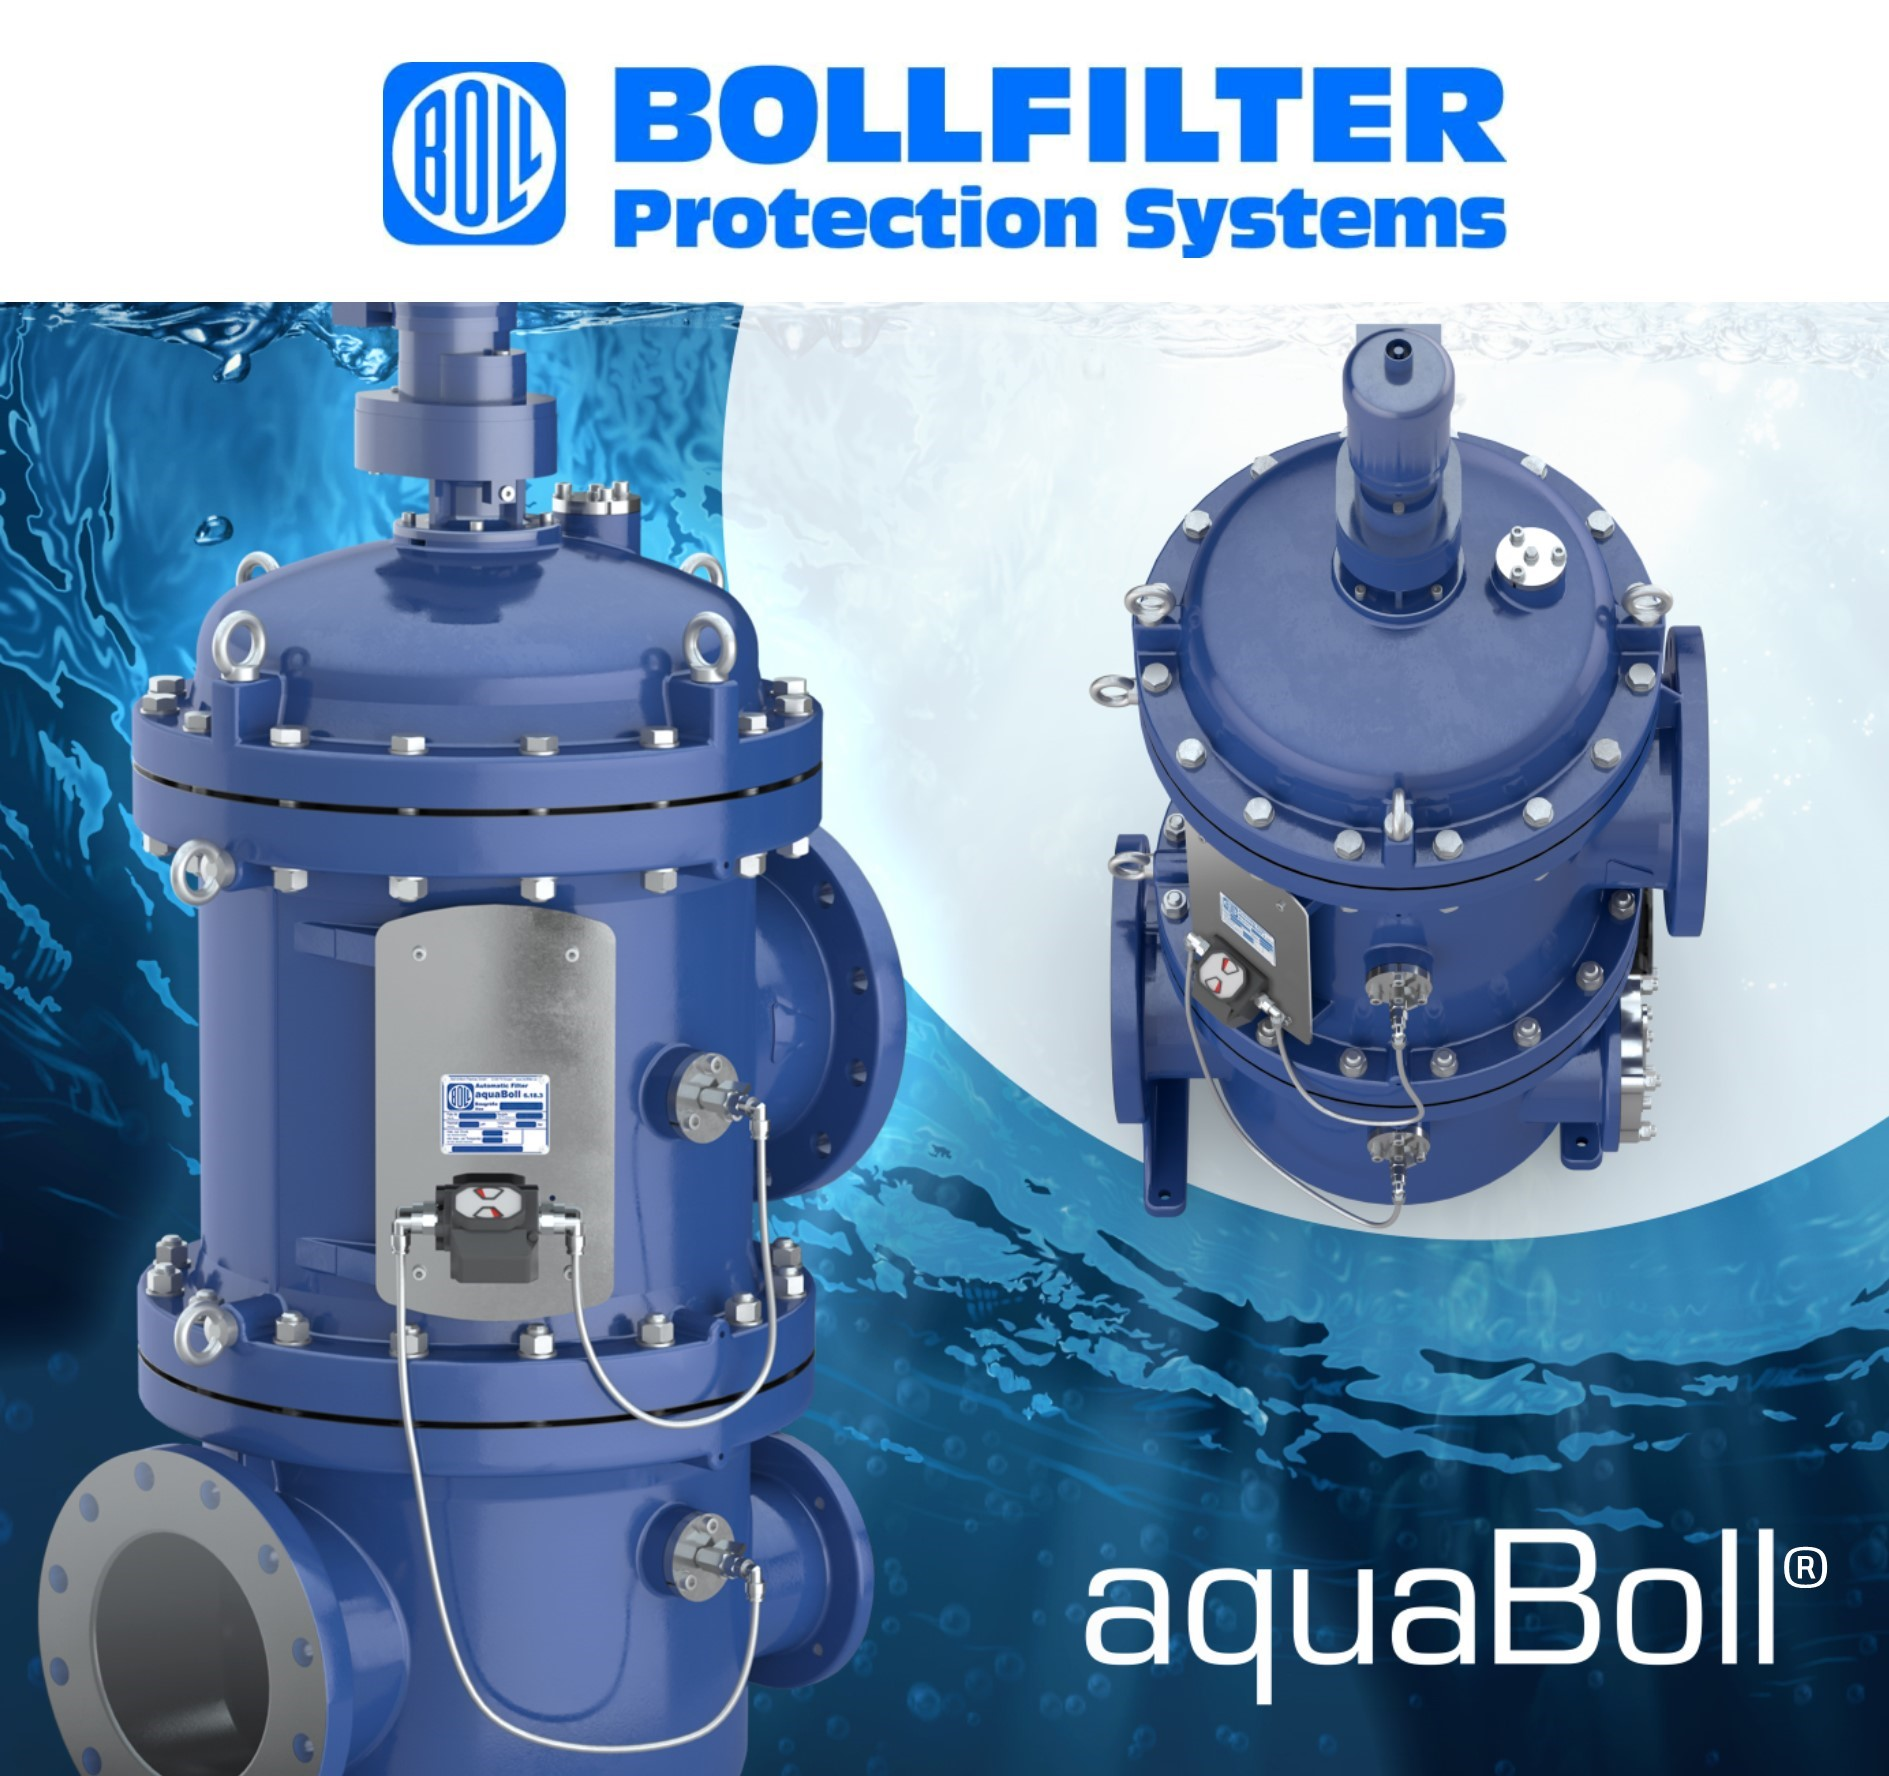 BOLLFILTER UK present our new Fully Automatic Filter aquaBoll®